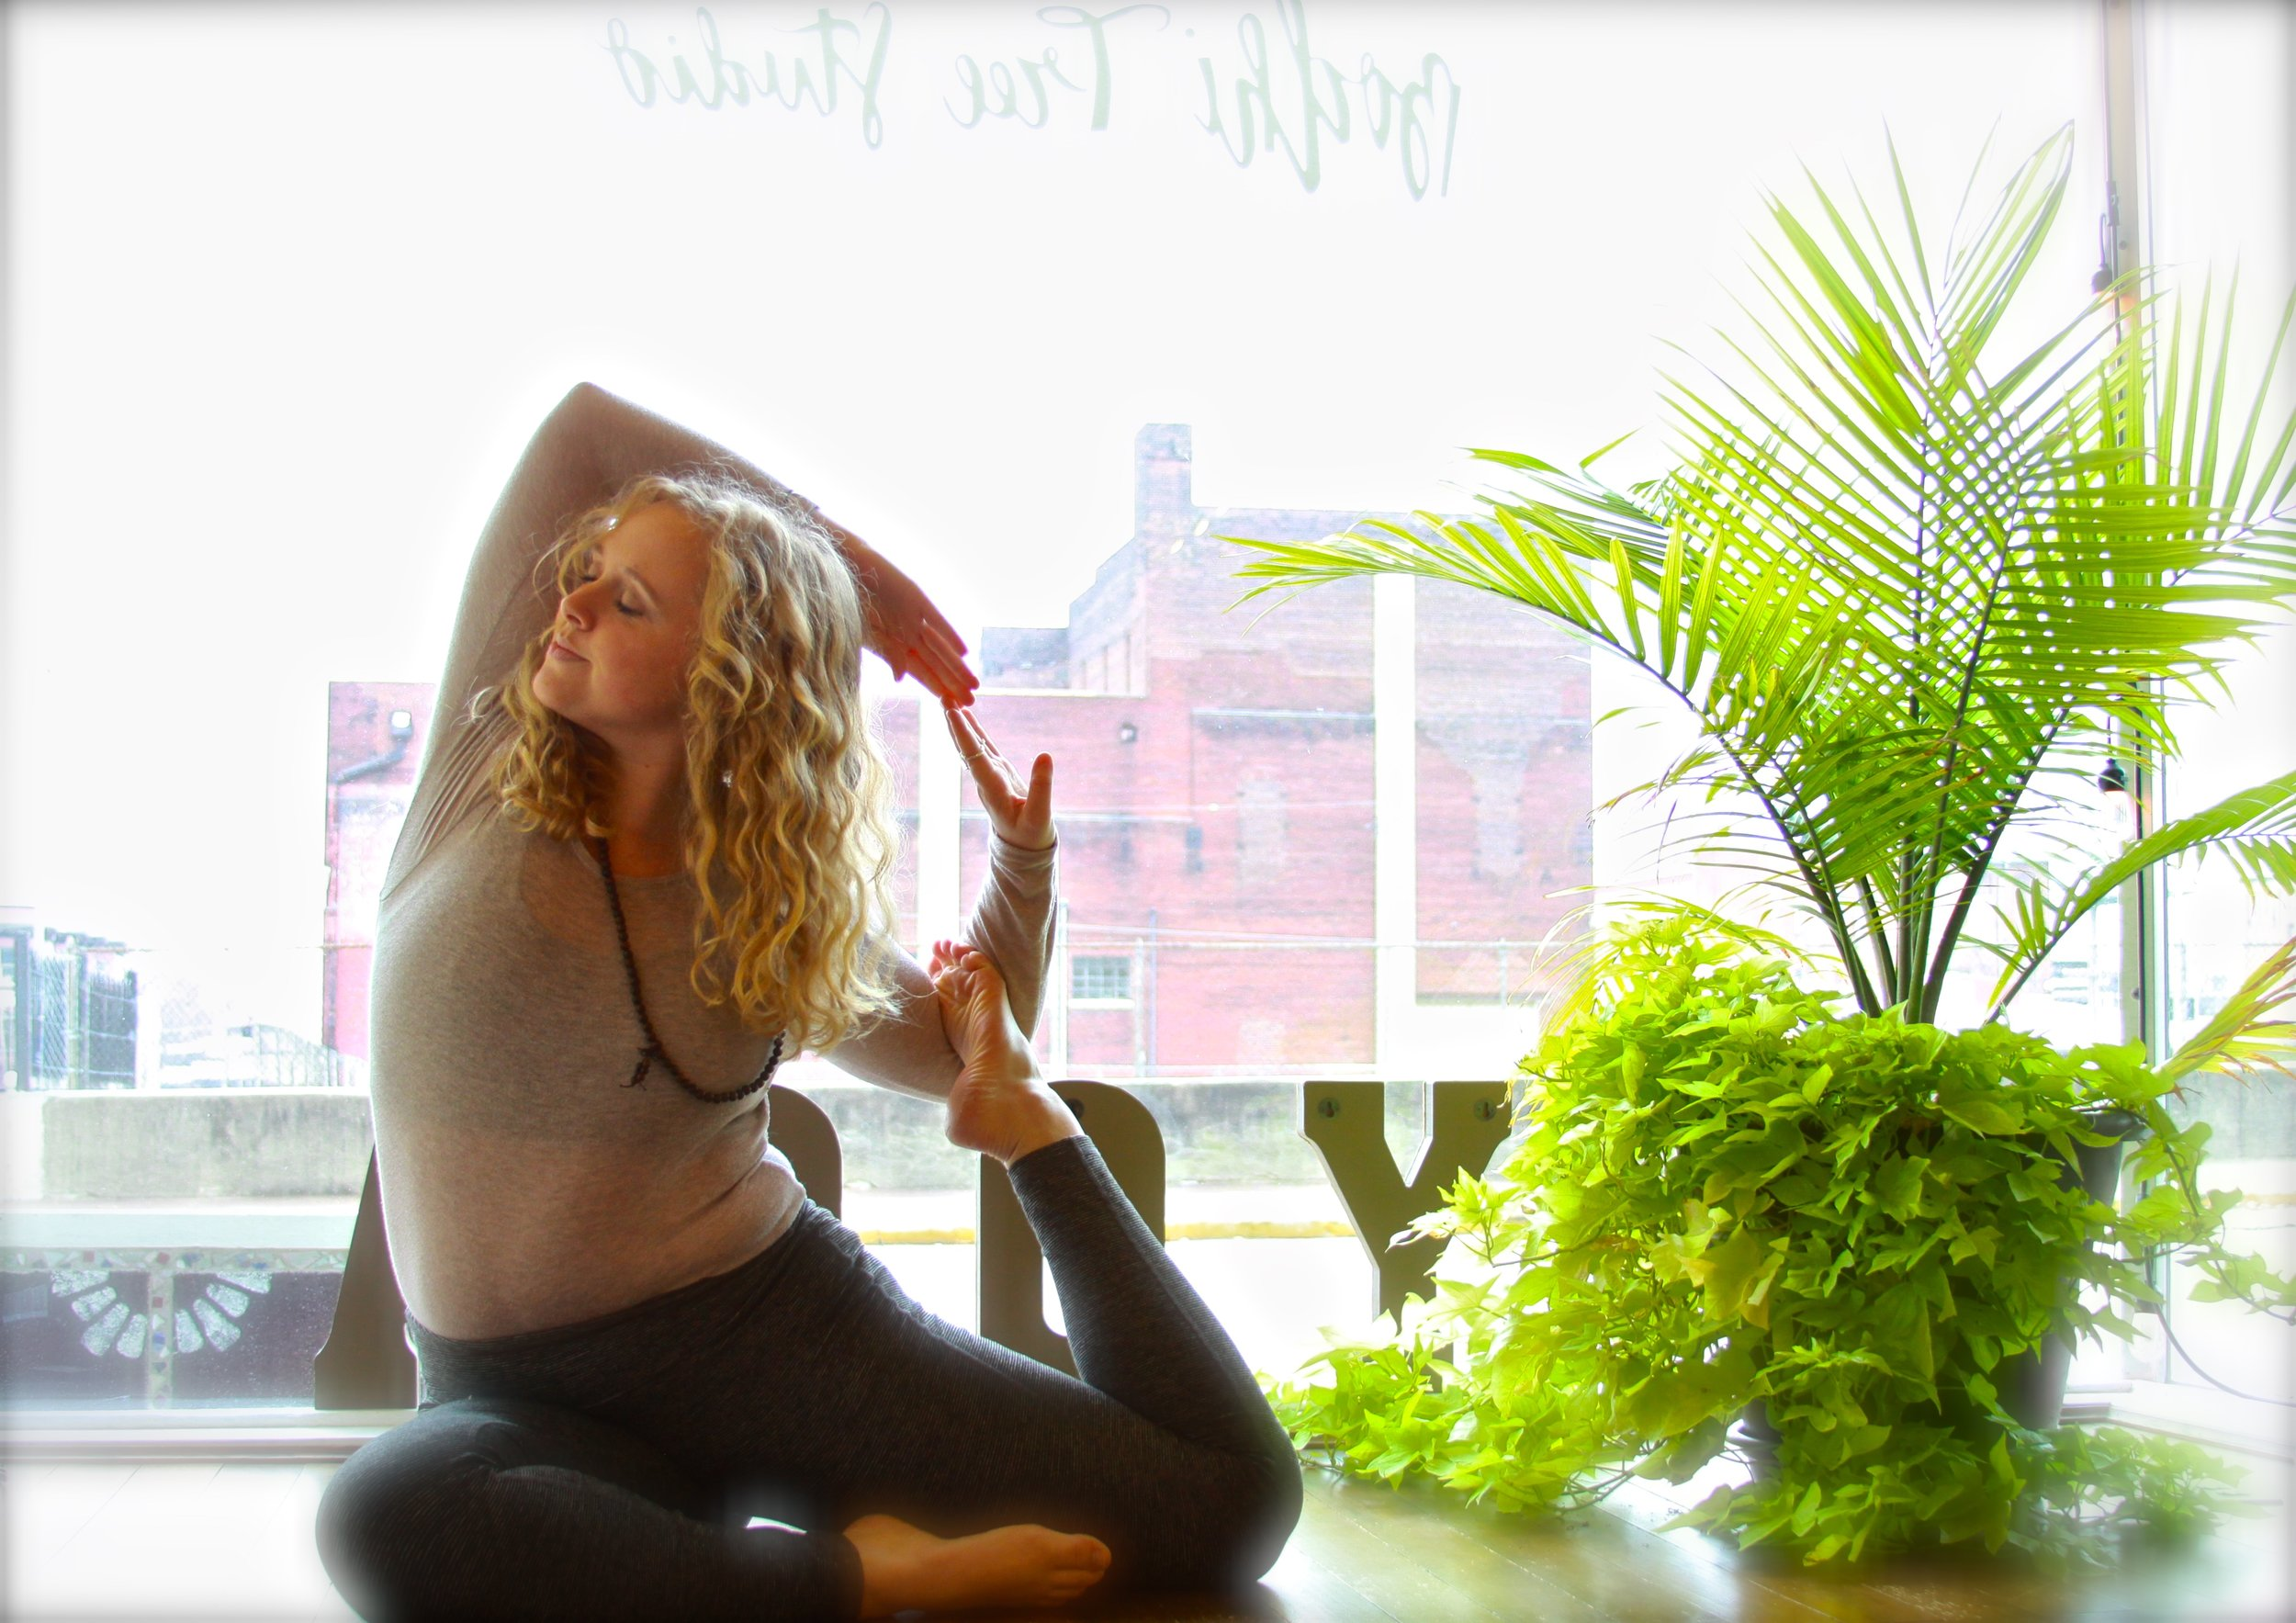 Haley Brown is a spirited yoga instructor who is always trying to bring new life to her practice through observing and learning from others. Through yoga, she has found unmatched calm and centeredness in her life, discovering tranquility through breath. Through teaching, she brings energy, fun, and accessibility to yoga, guiding others to find their center.   In her time spent off the mat, she enjoys being an engineer, keeping up with everything going on in the world, traveling all over the US, and spending time with her cat Justice.